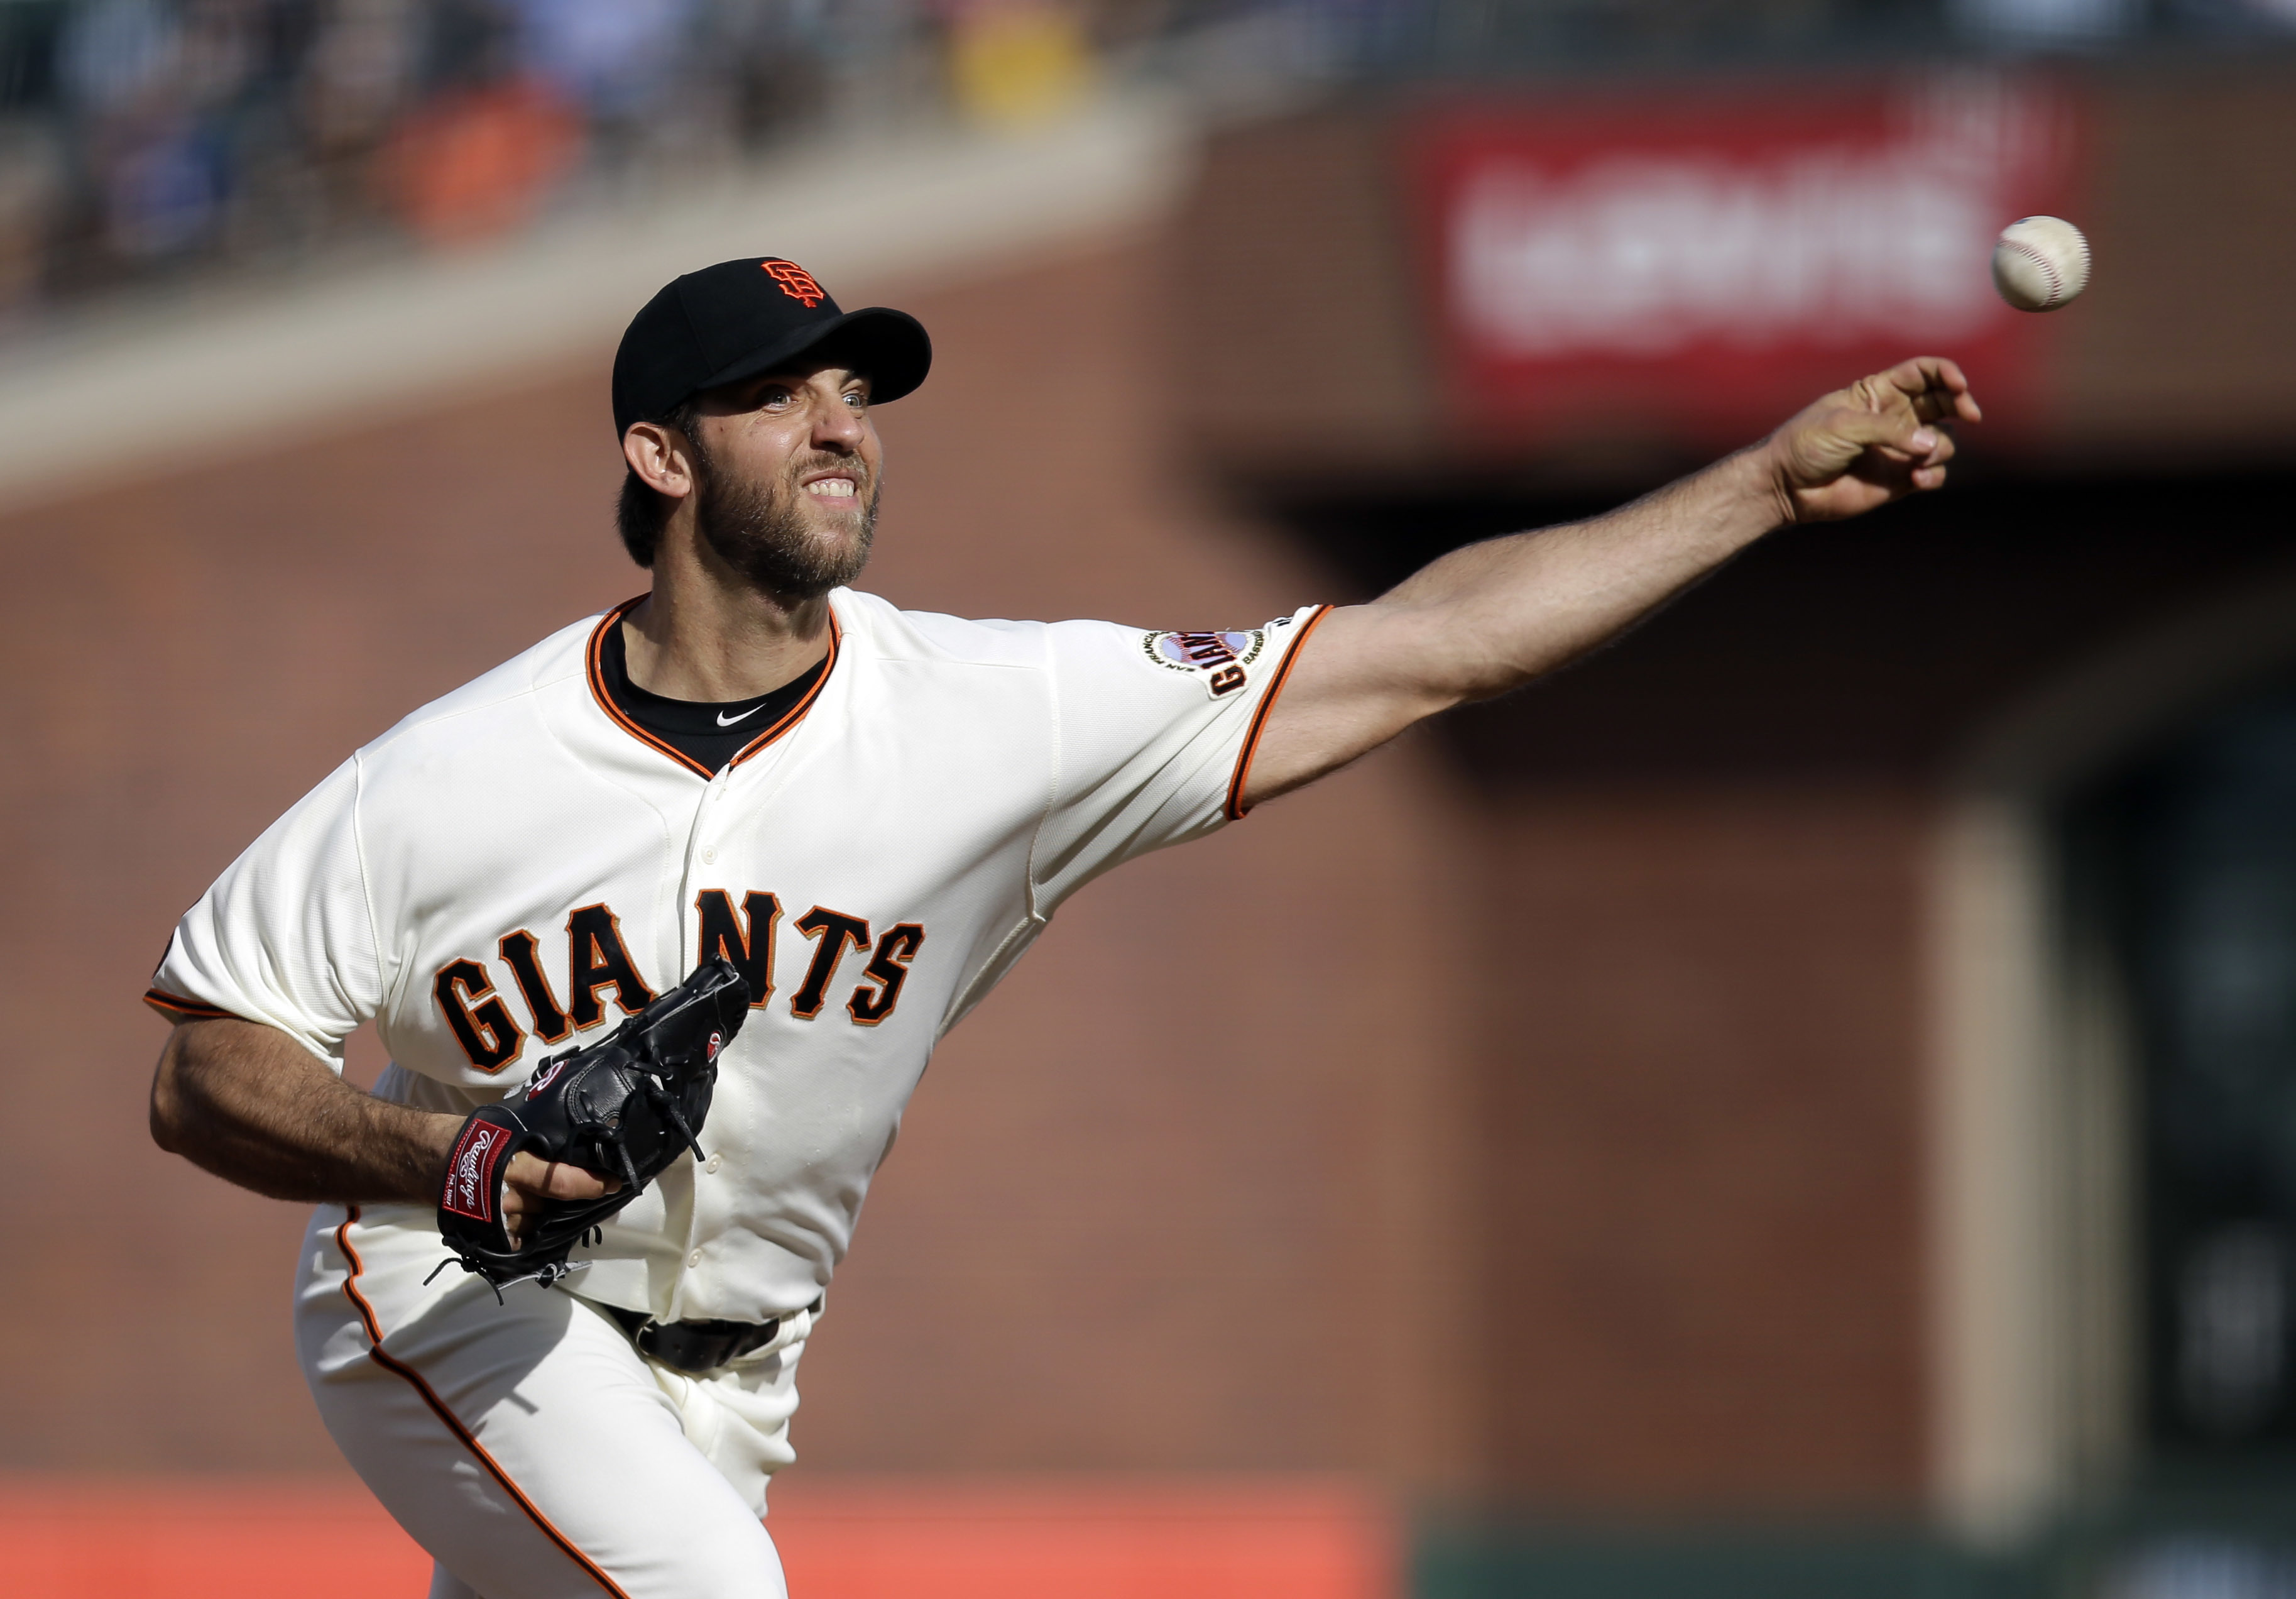 San Francisco Giants starting pitcher Madison Bumgarner throws to the Chicago Cubs during the second inning of a baseball game Sunday, May 22, 2016, in San Francisco. (AP Photo/Marcio Jose Sanchez)